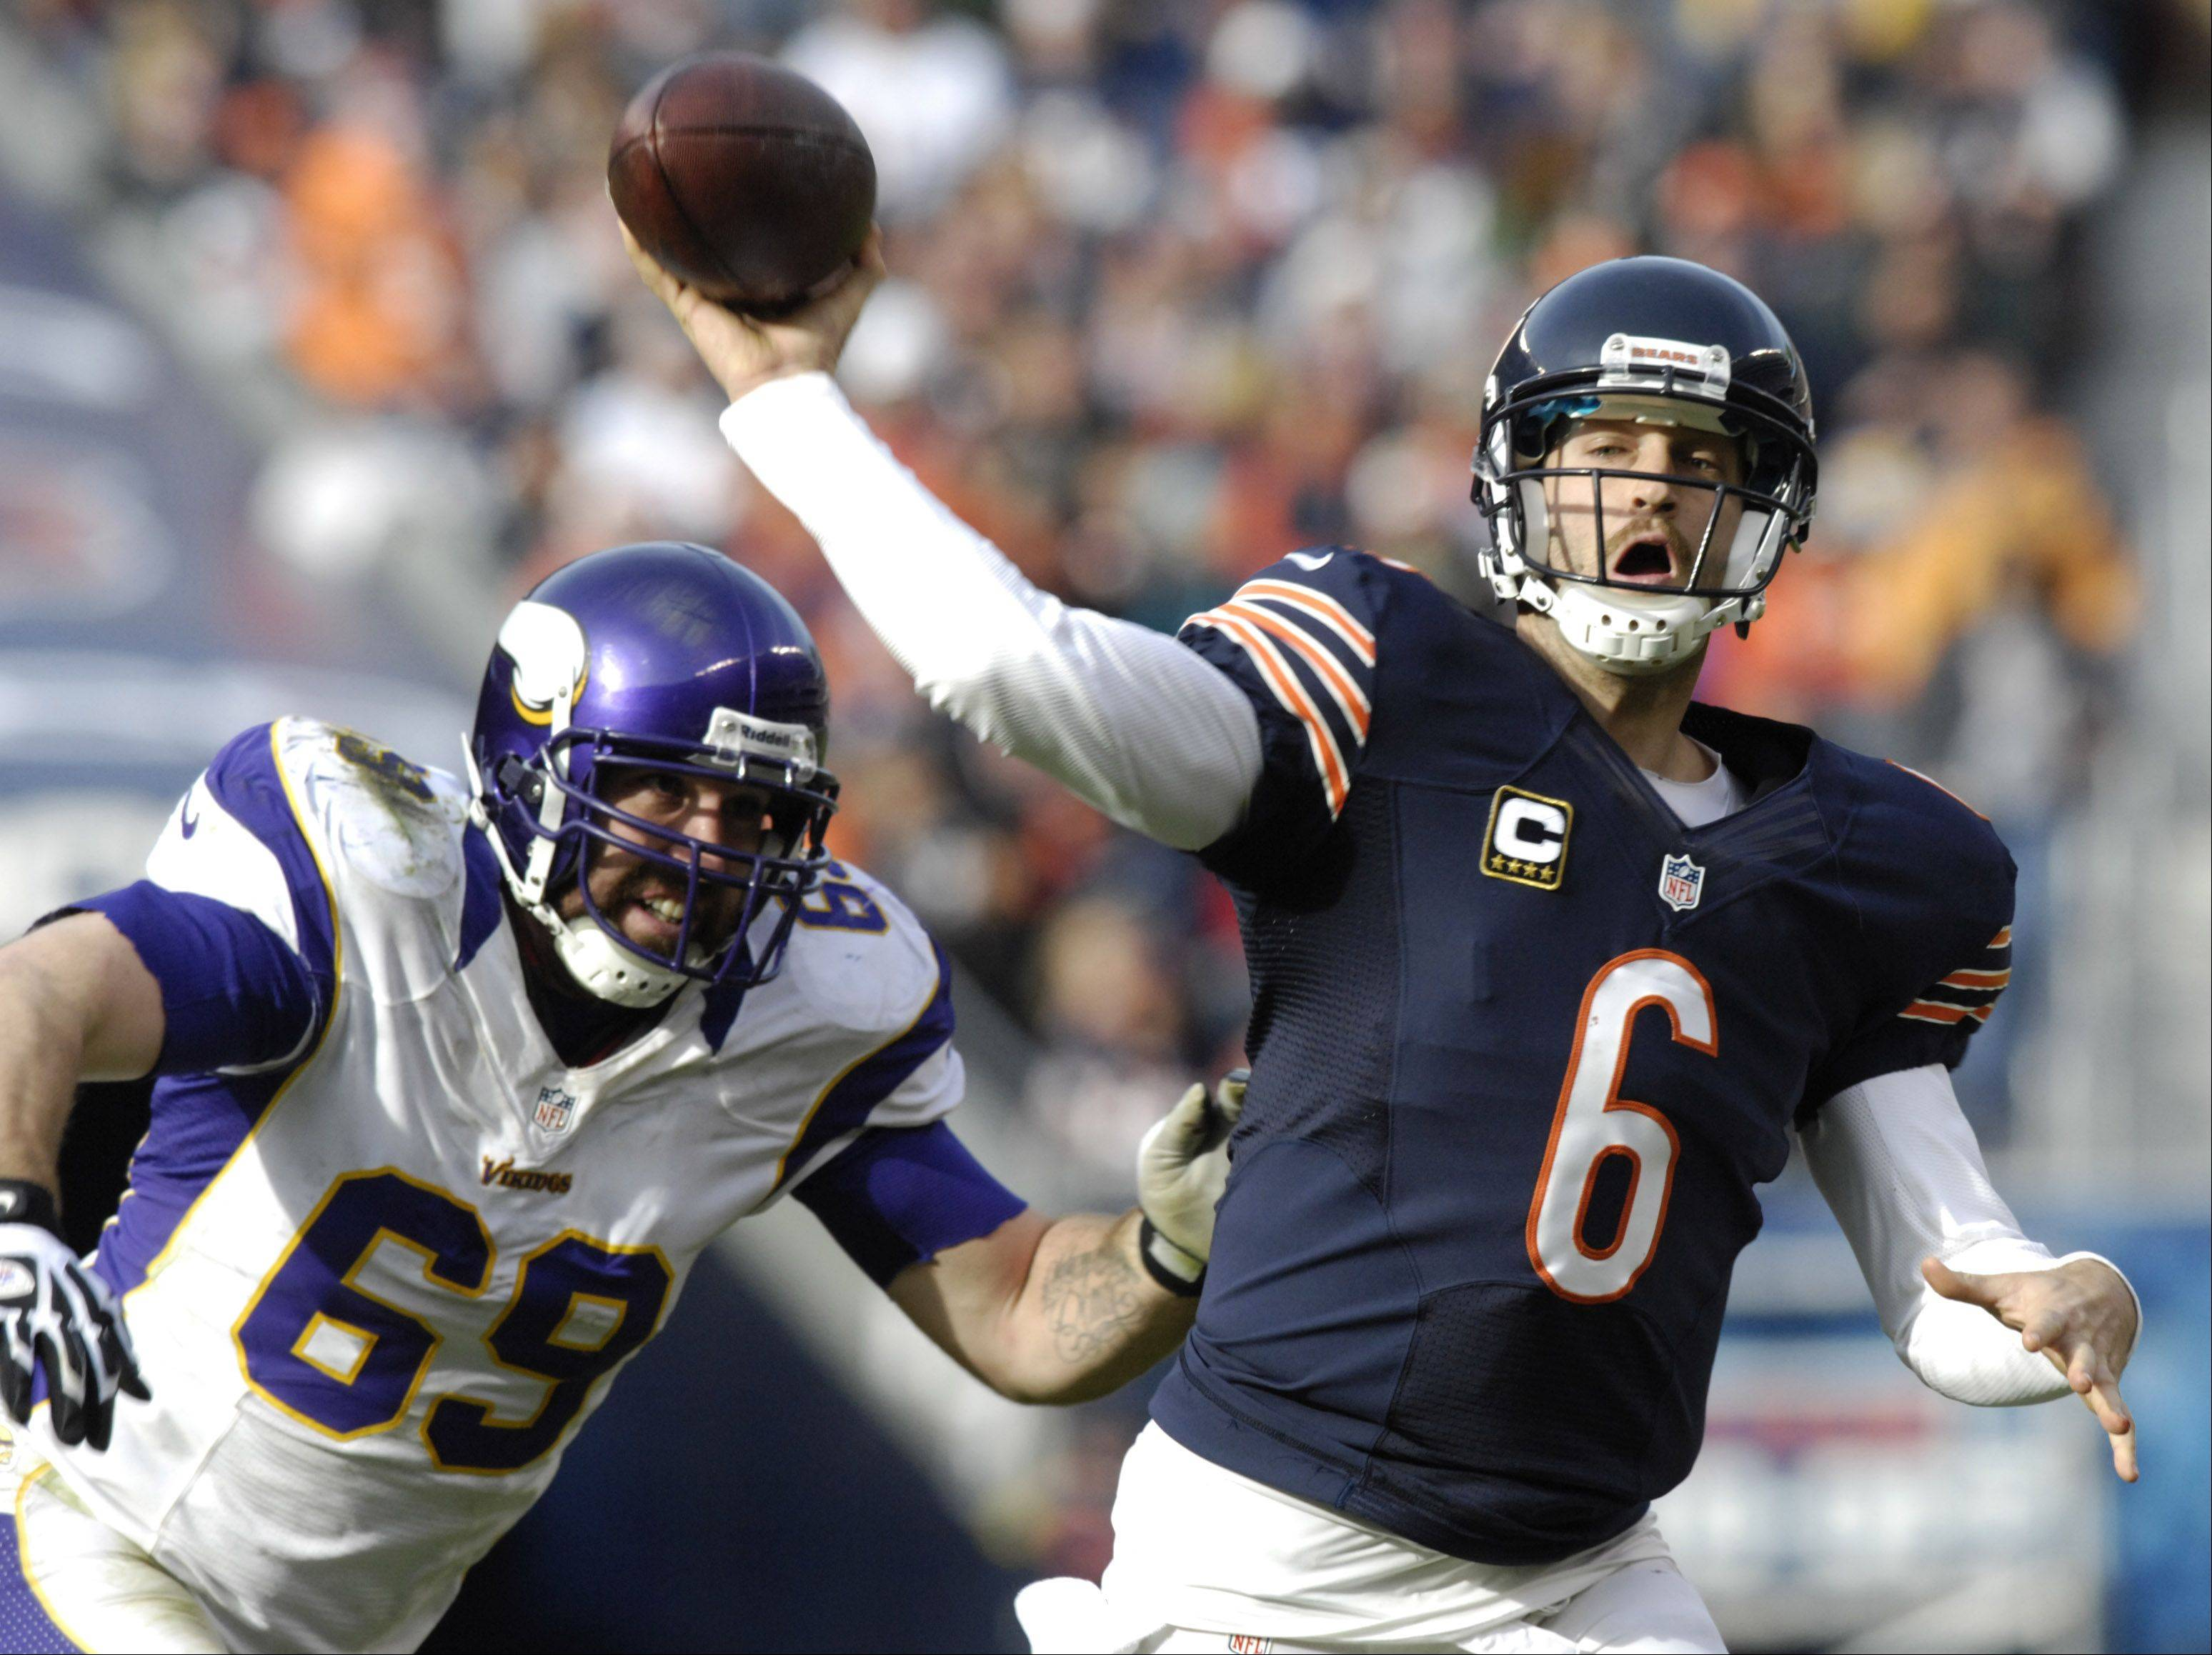 JOE LEWNARD/jlewnard@dailyherald.com � Chicago Bears quarterback Jay Cutler throws a second-quarter touchdown pass to tight end Matt Spaeth while being pursued by Minnesota Vikings defensive tackle Jared A